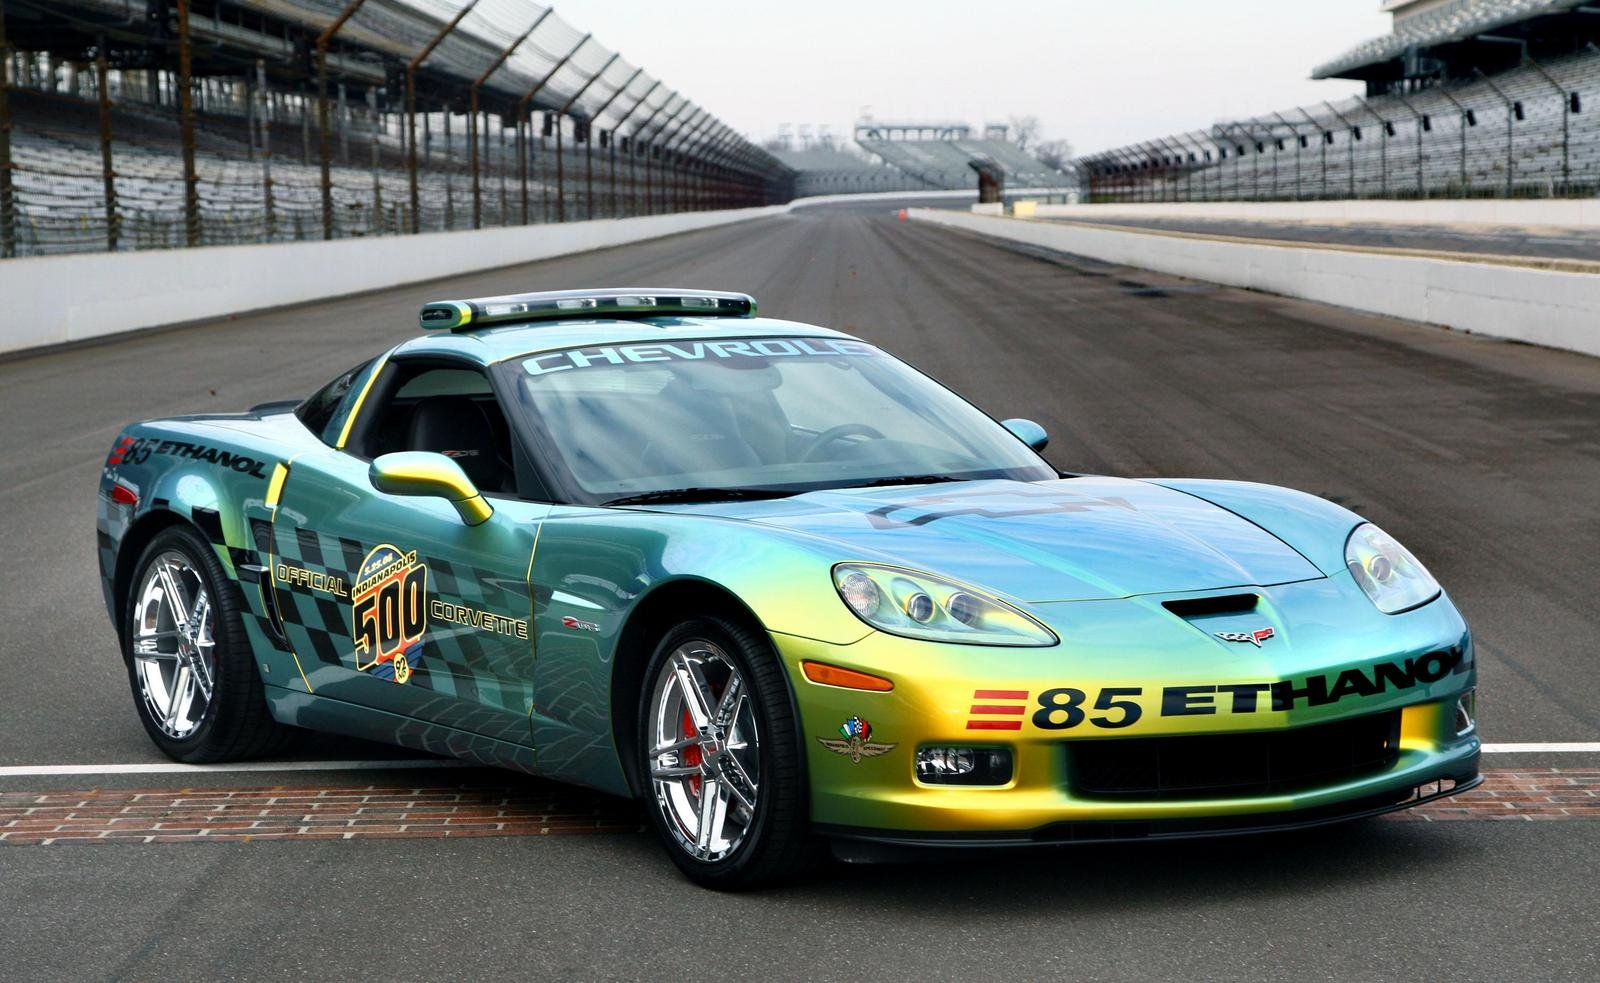 2008 Corvette Z06 Ethanol E85 Indy 500 Pacecar Gallery